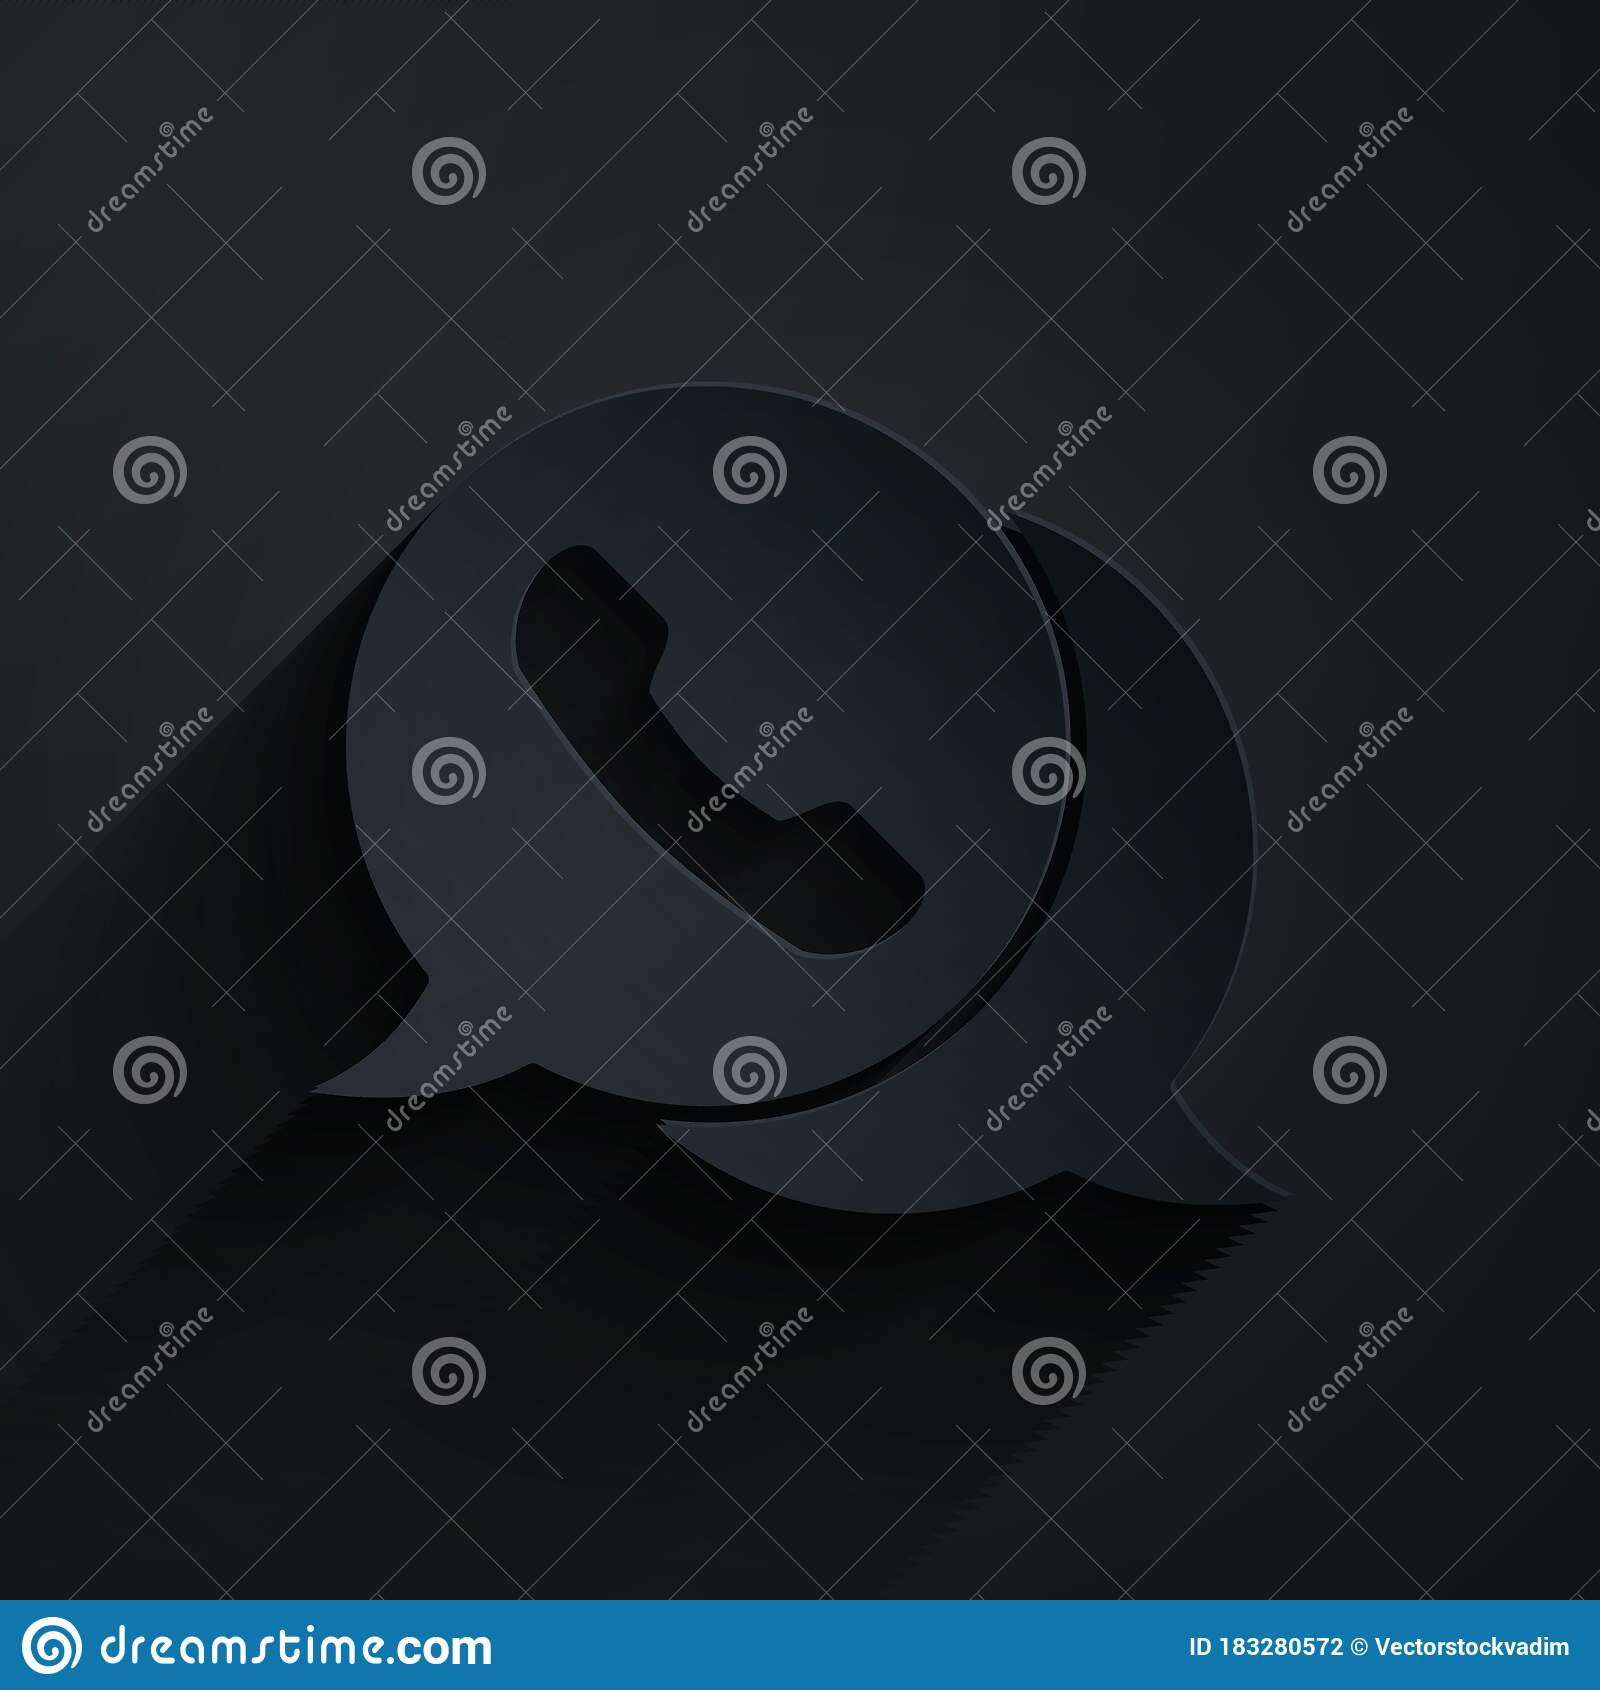 Paper Cut Telephone With Speech Bubble Chat Icon Isolated On Black Background Support Customer Service Hotline Call Stock Vector Illustration Of Hotline Music 183280572